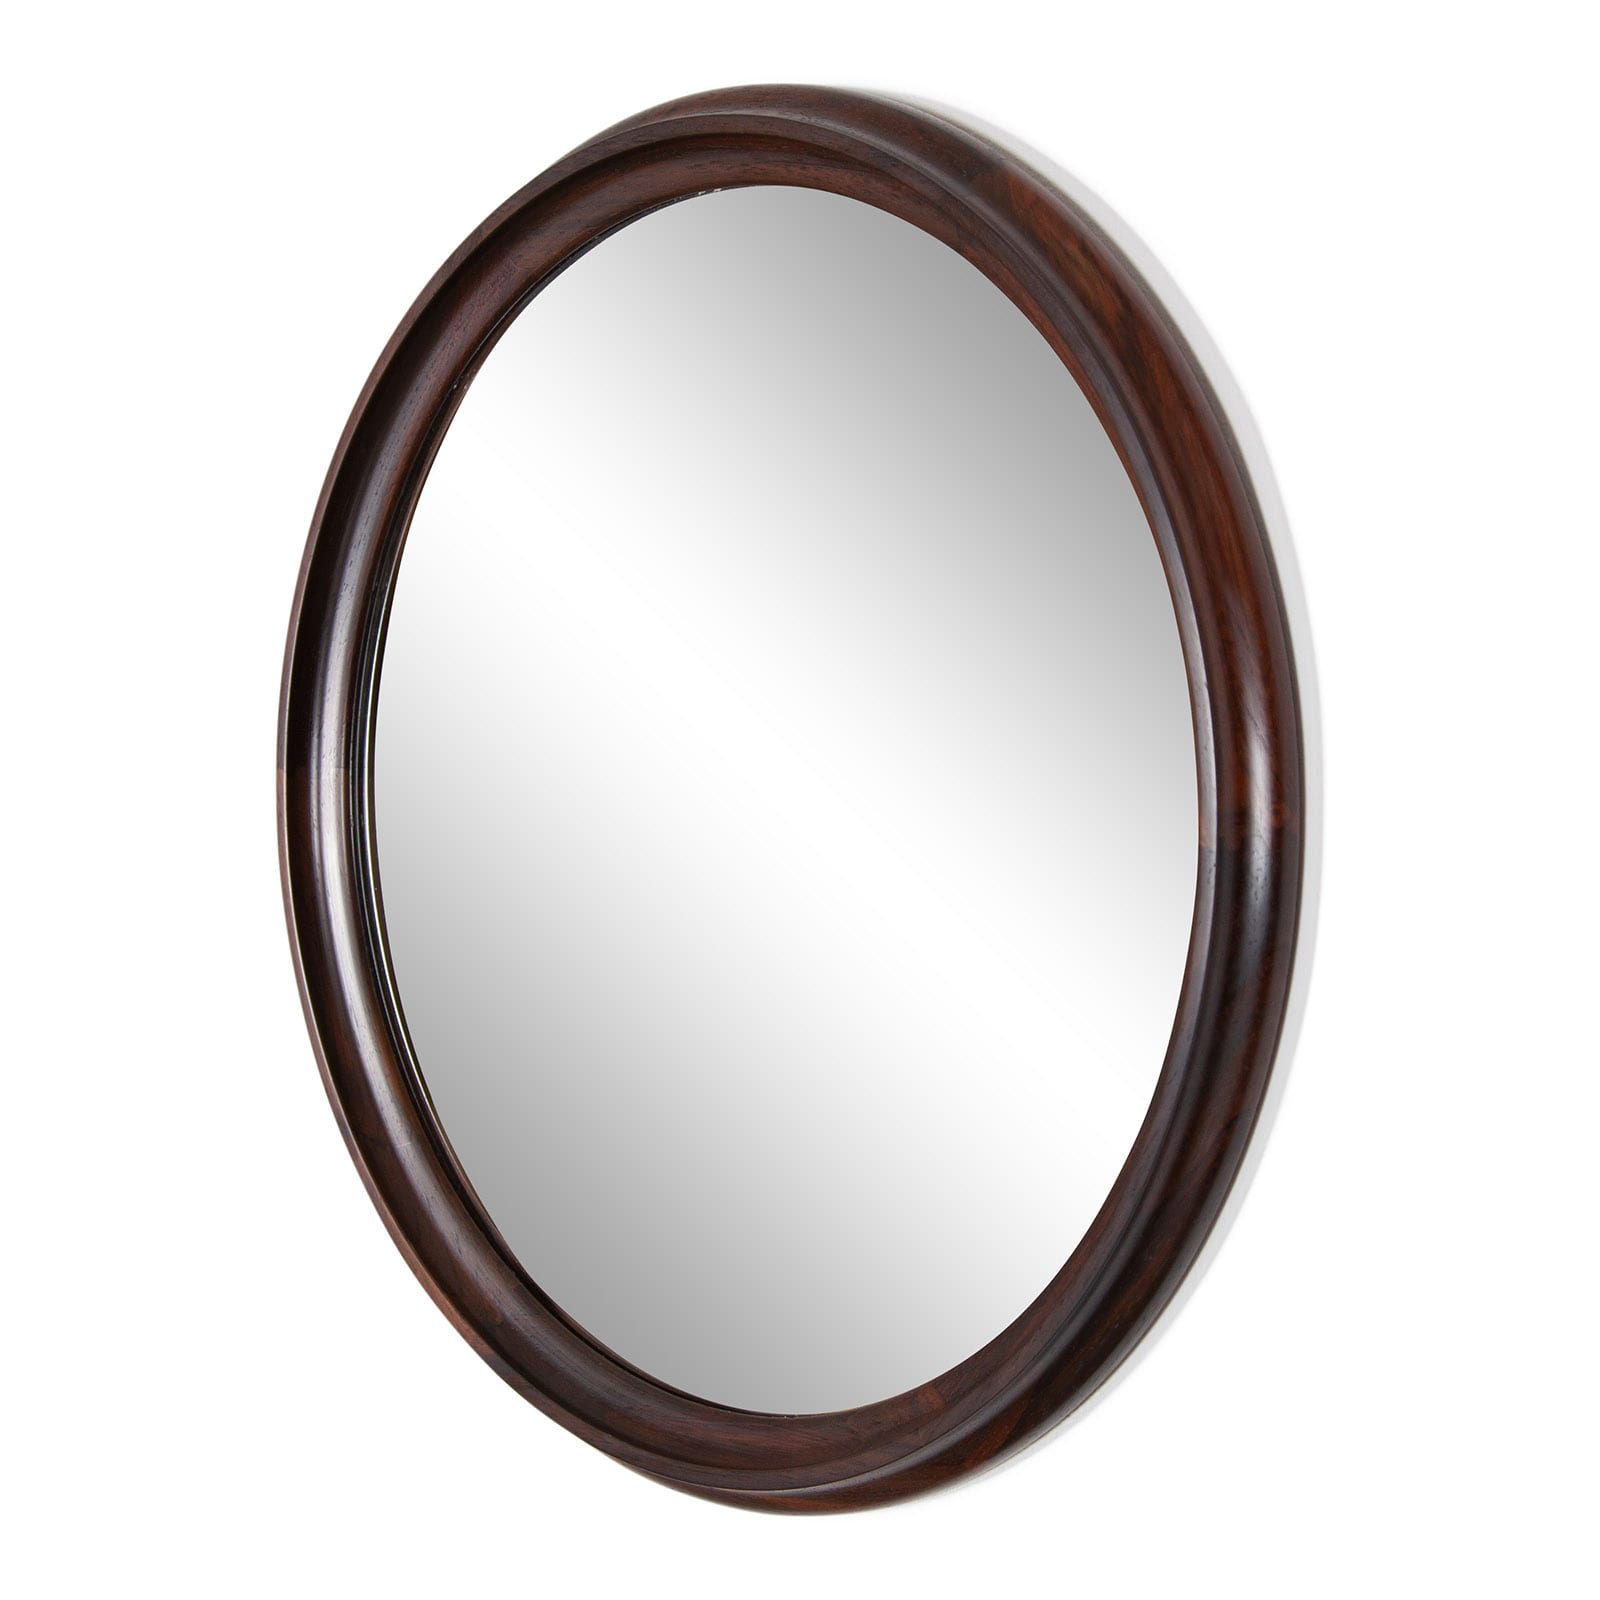 Mirror with rosewood frame